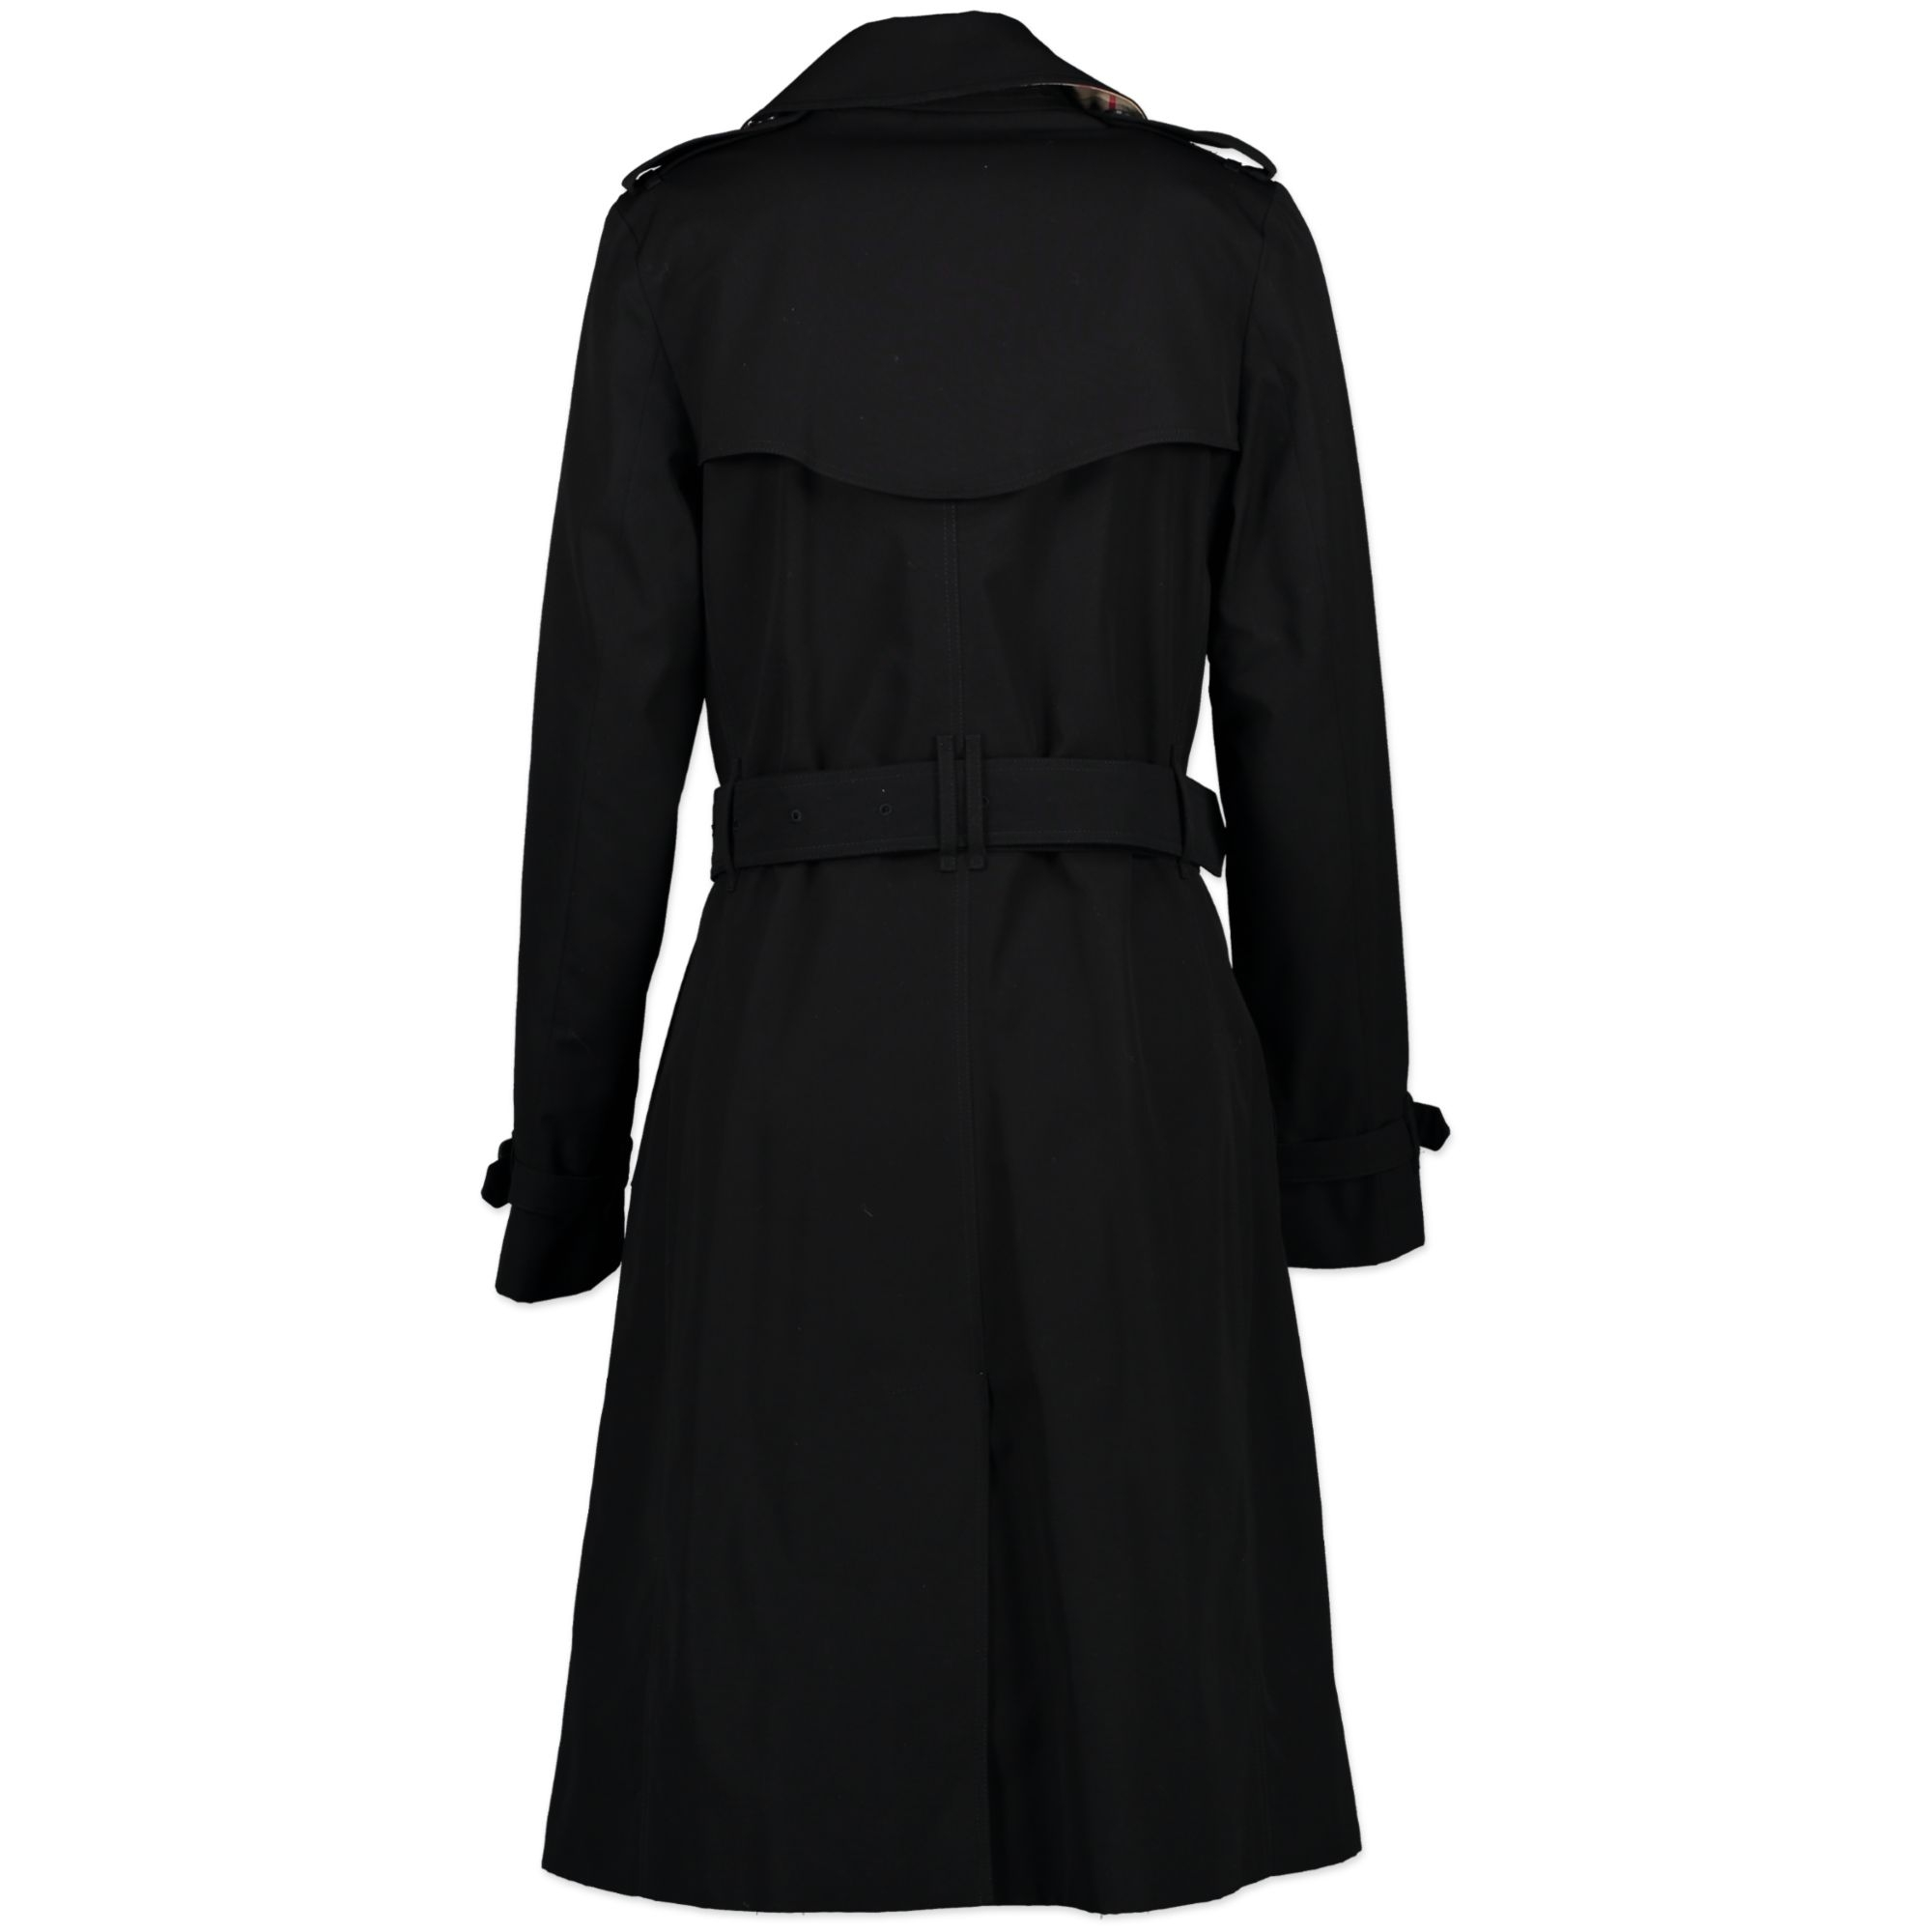 Burberry Black Trench Coat - size 36